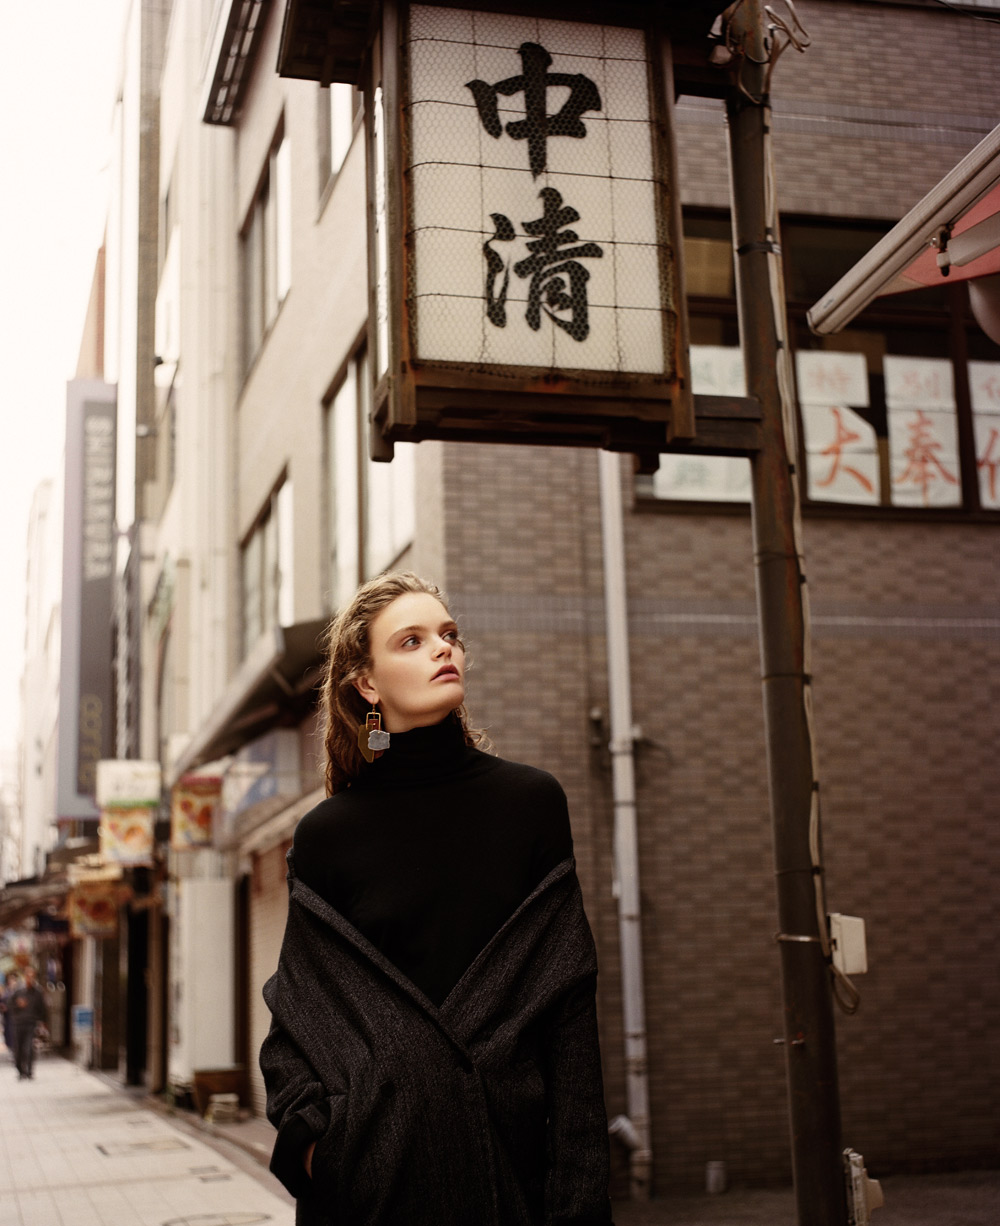 Fashion Editorial Japan, Fashion Editorial Tokyo, Japanese Fashion, Tokyo Fashion, Martha Wiggers, Amanda Shadforth, Oracle Fox, Rodney Deane, Oracle Fox Journal, Photography, Styling, Work